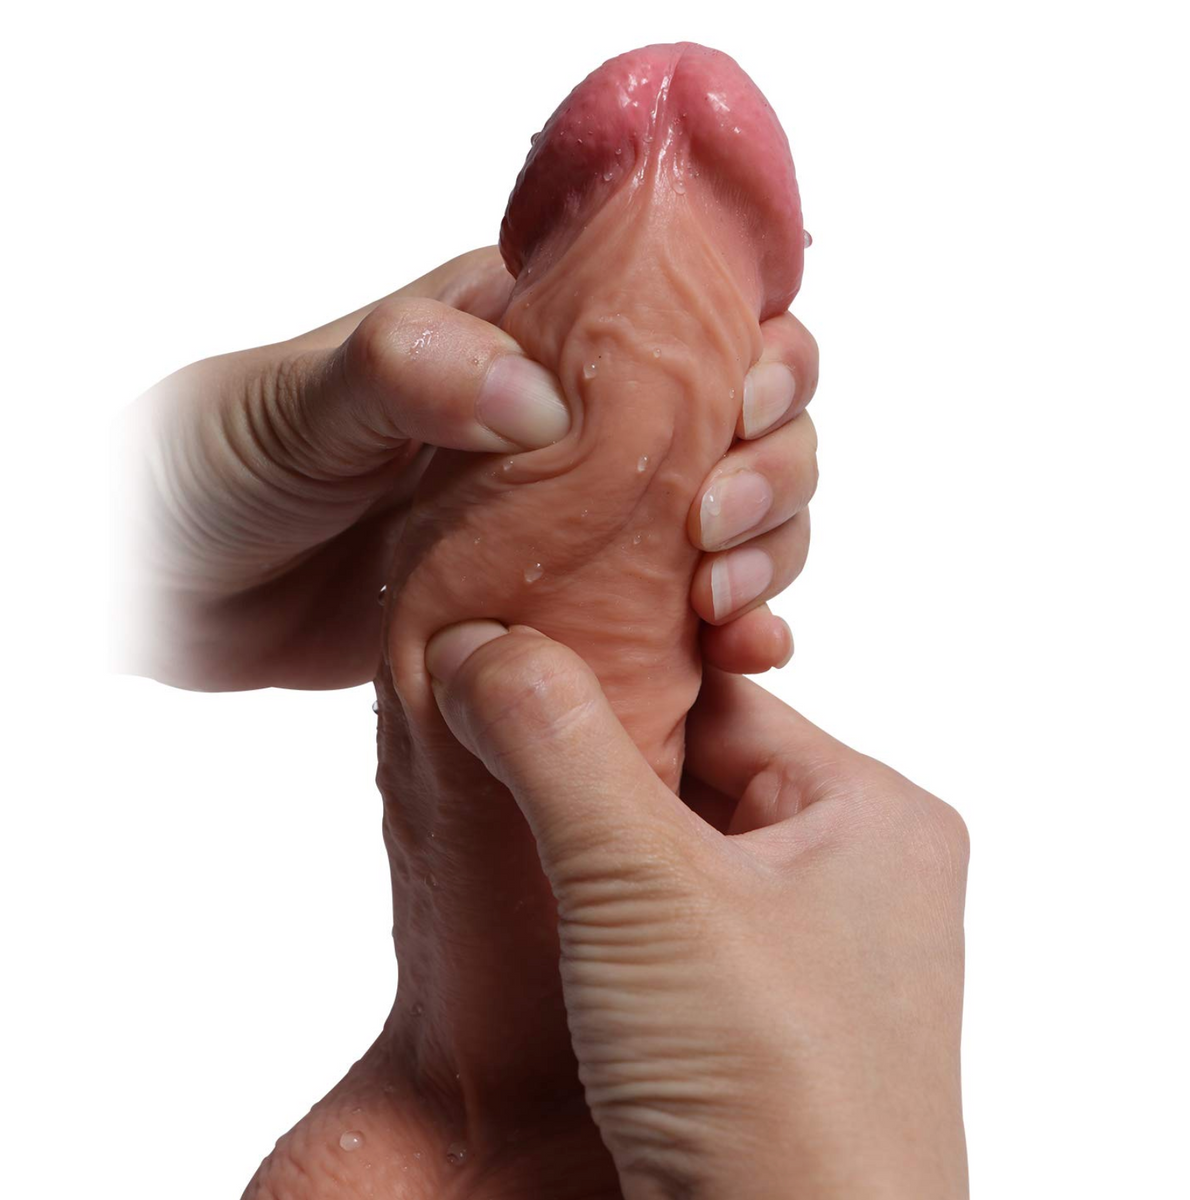 Super Realistic 75 Inch Dildo - Just 3999 With Free -1533